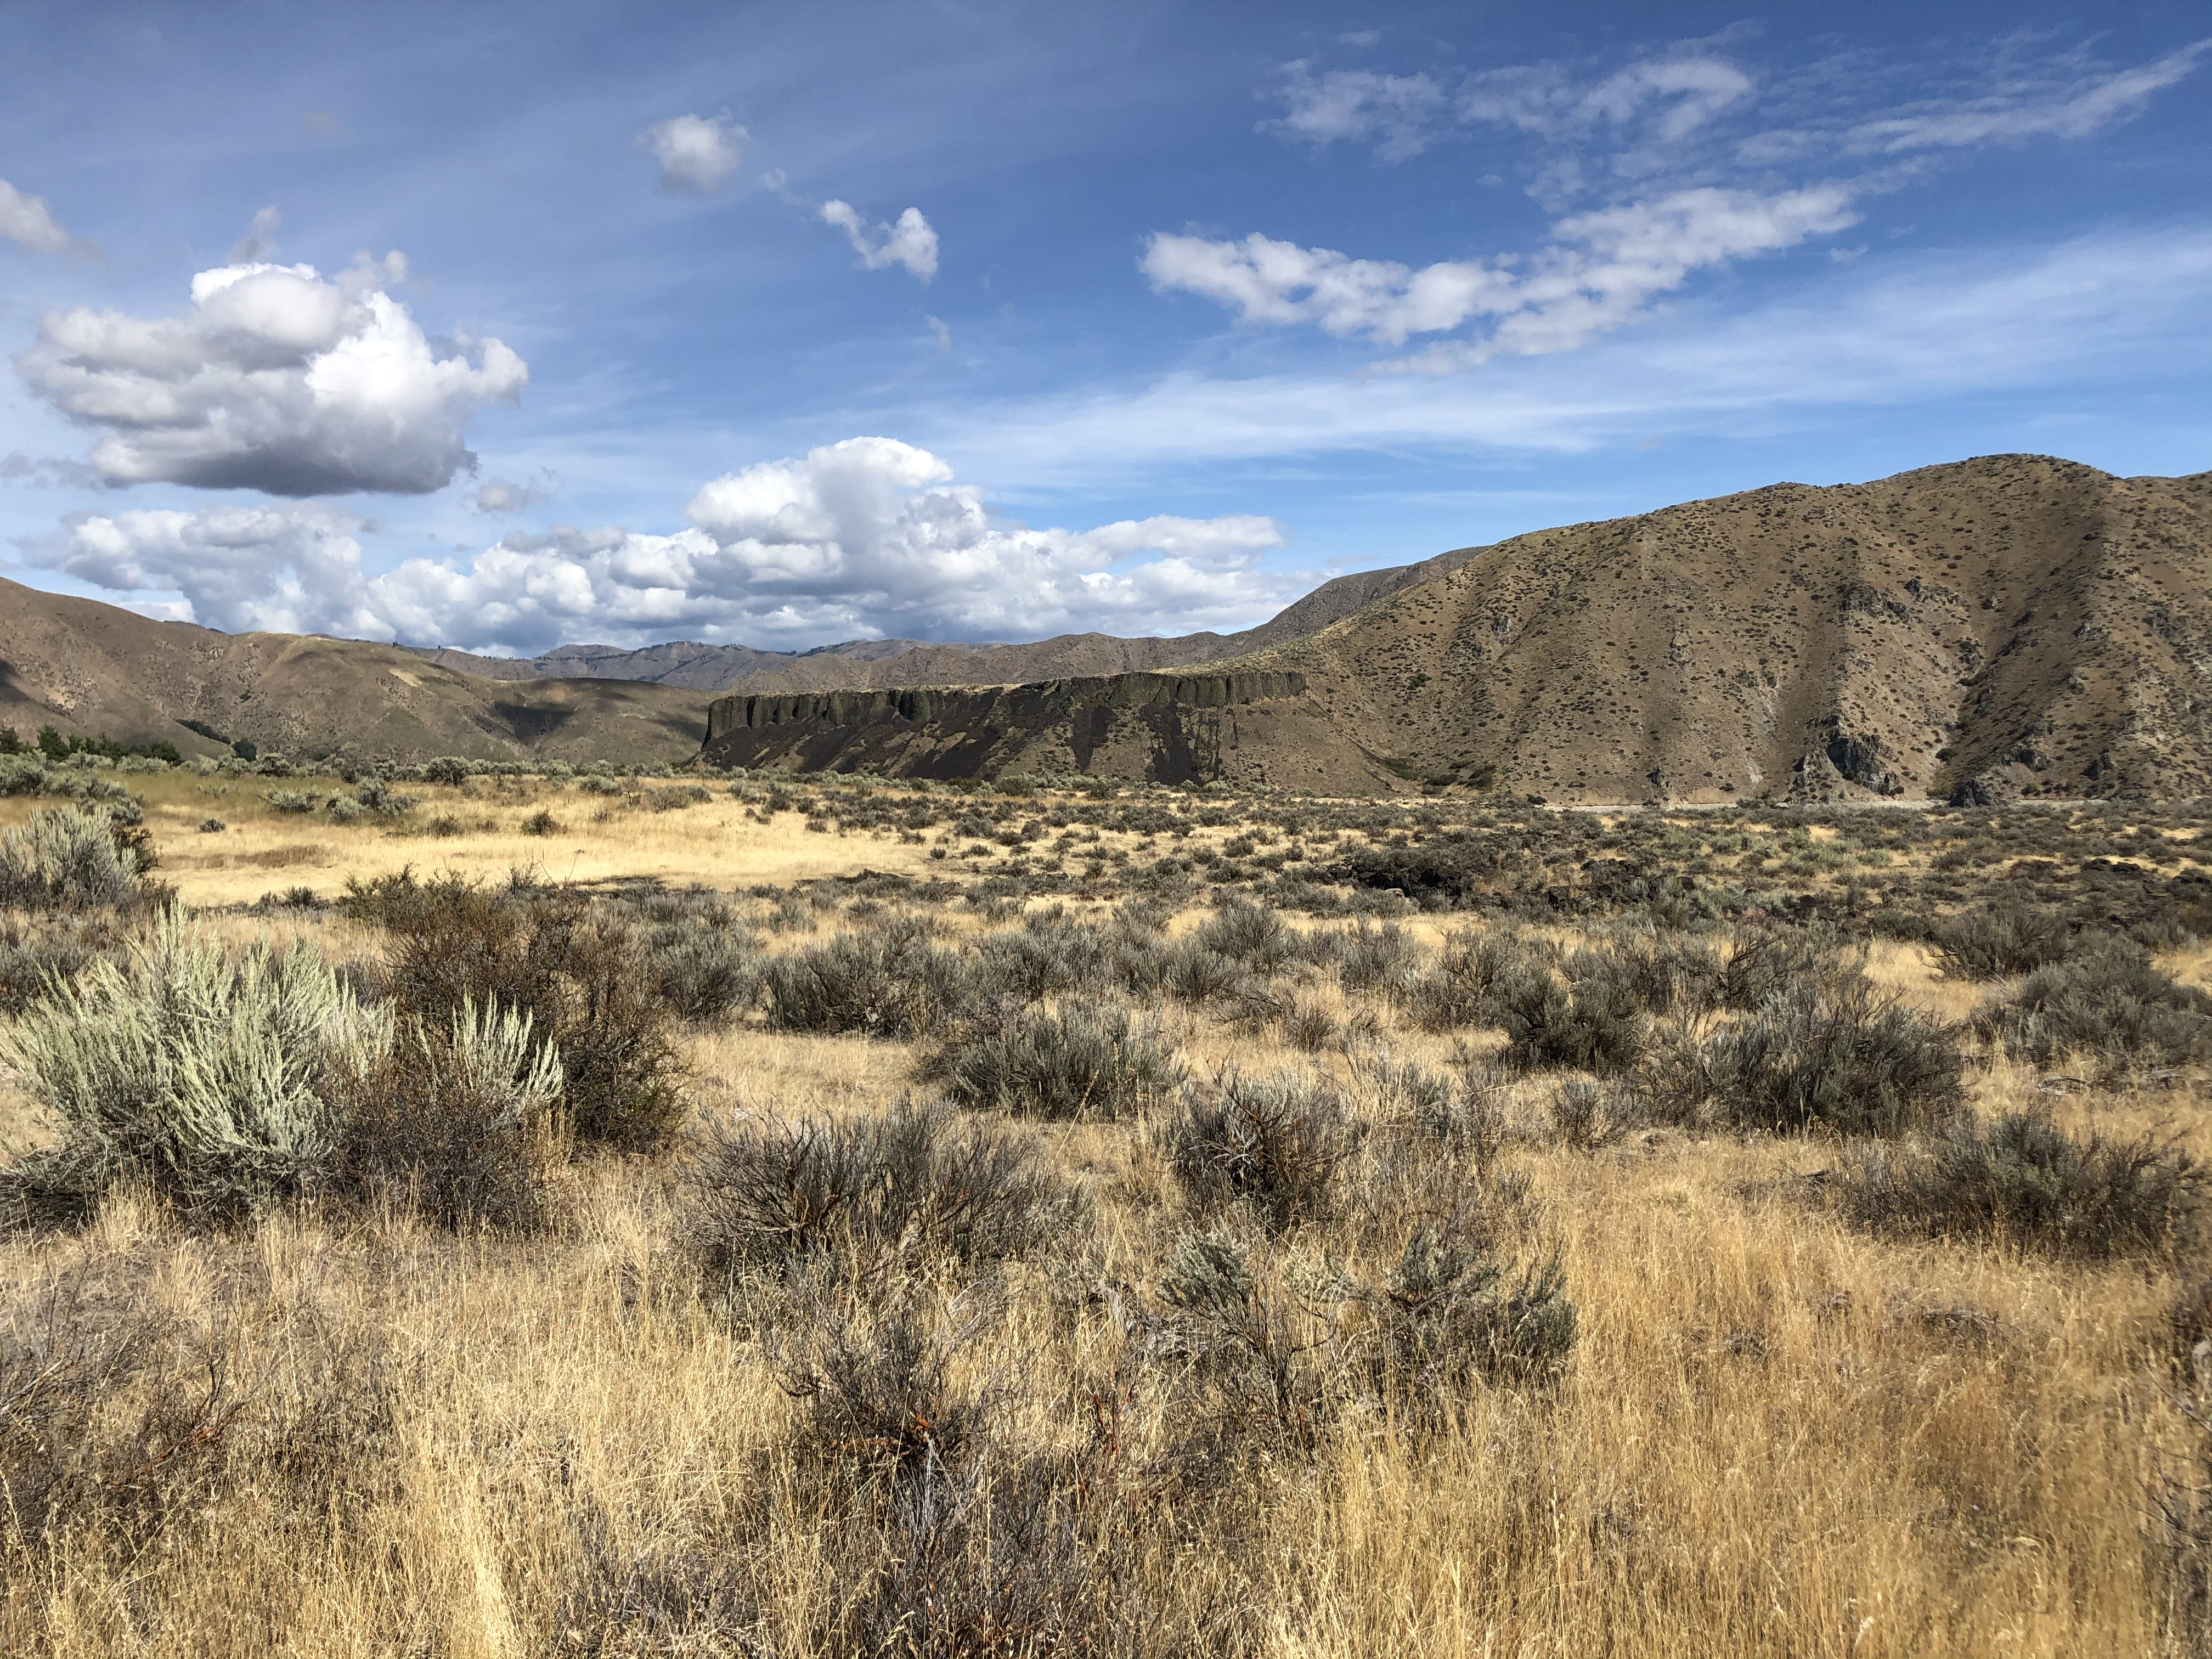 Idaho landscape featuring sagebrush and grasses, with foothills in the background